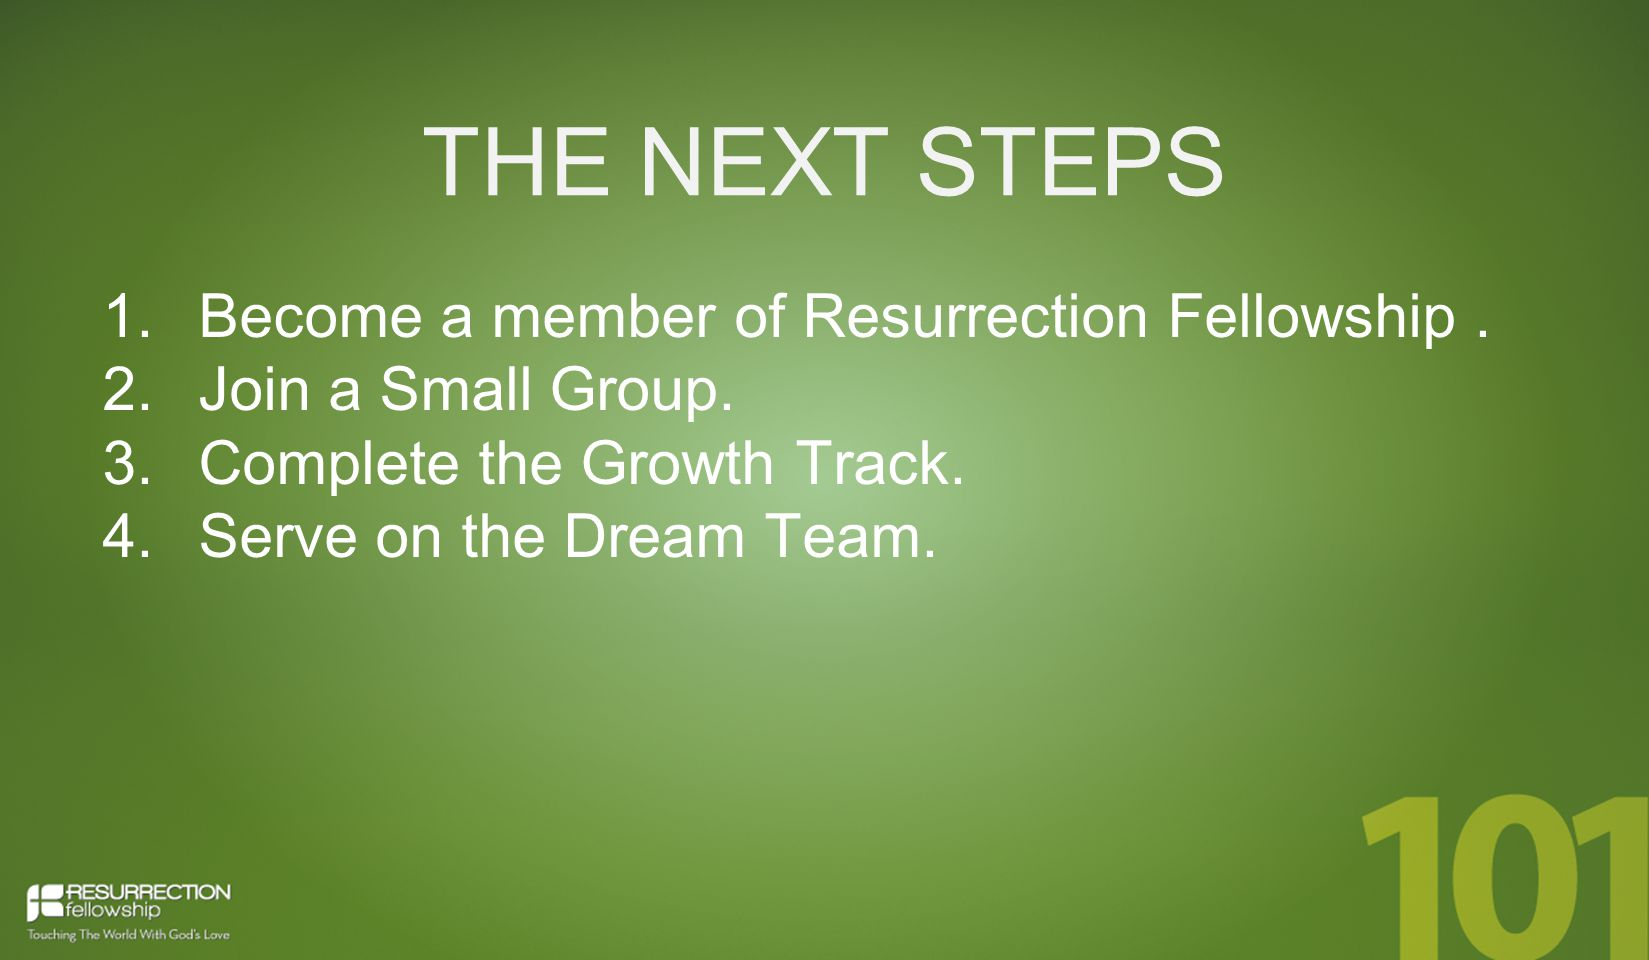 THE NEXT STEPS 1.Become a member of Resurrection Fellowship.